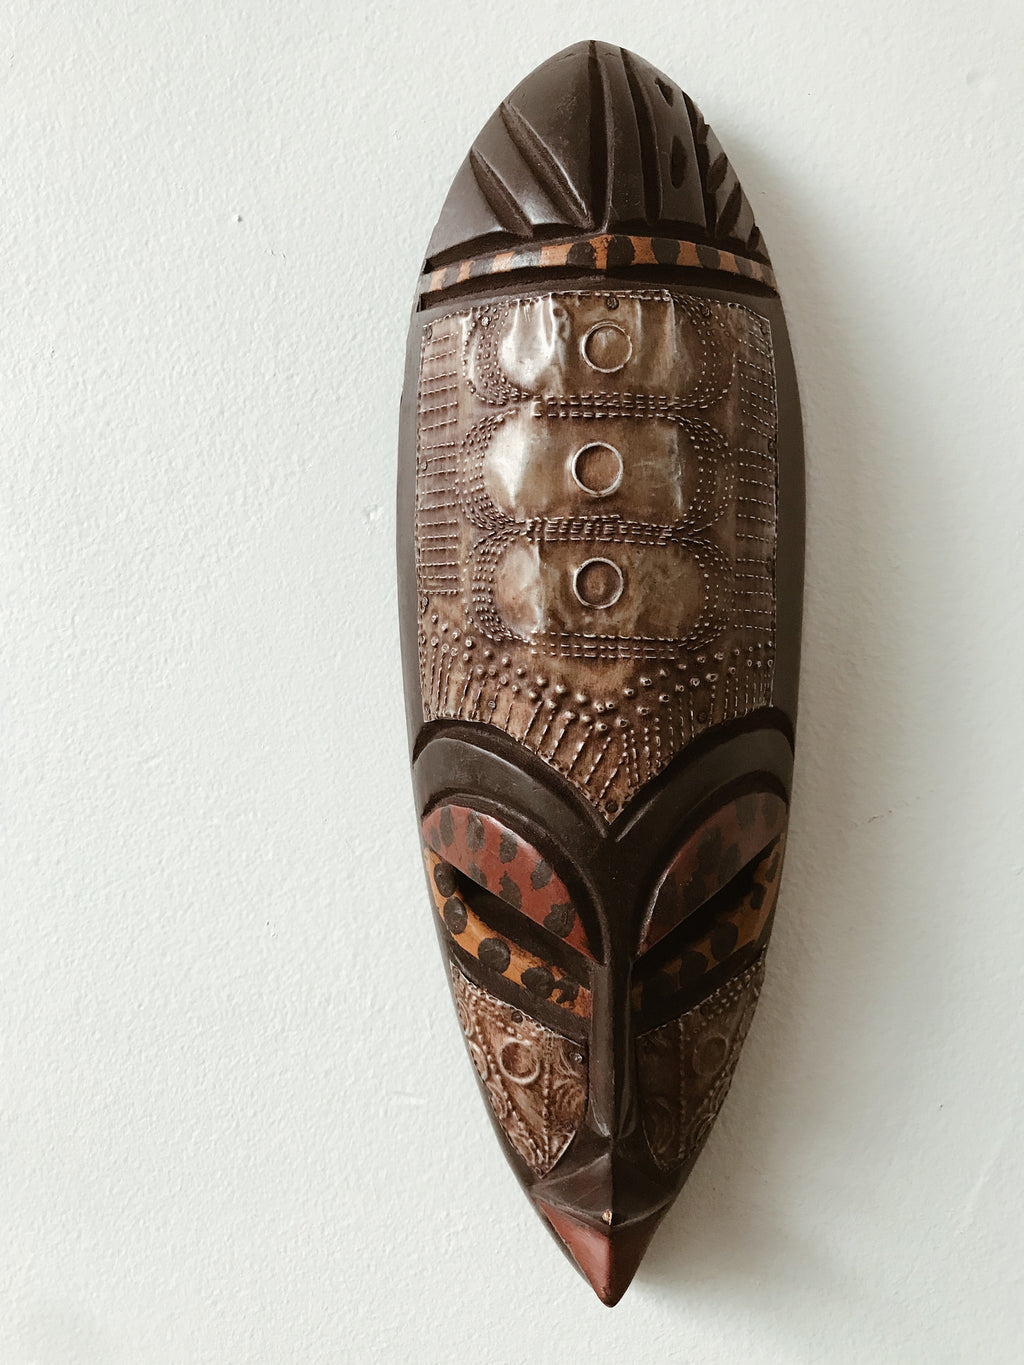 Small African Fang Mask I